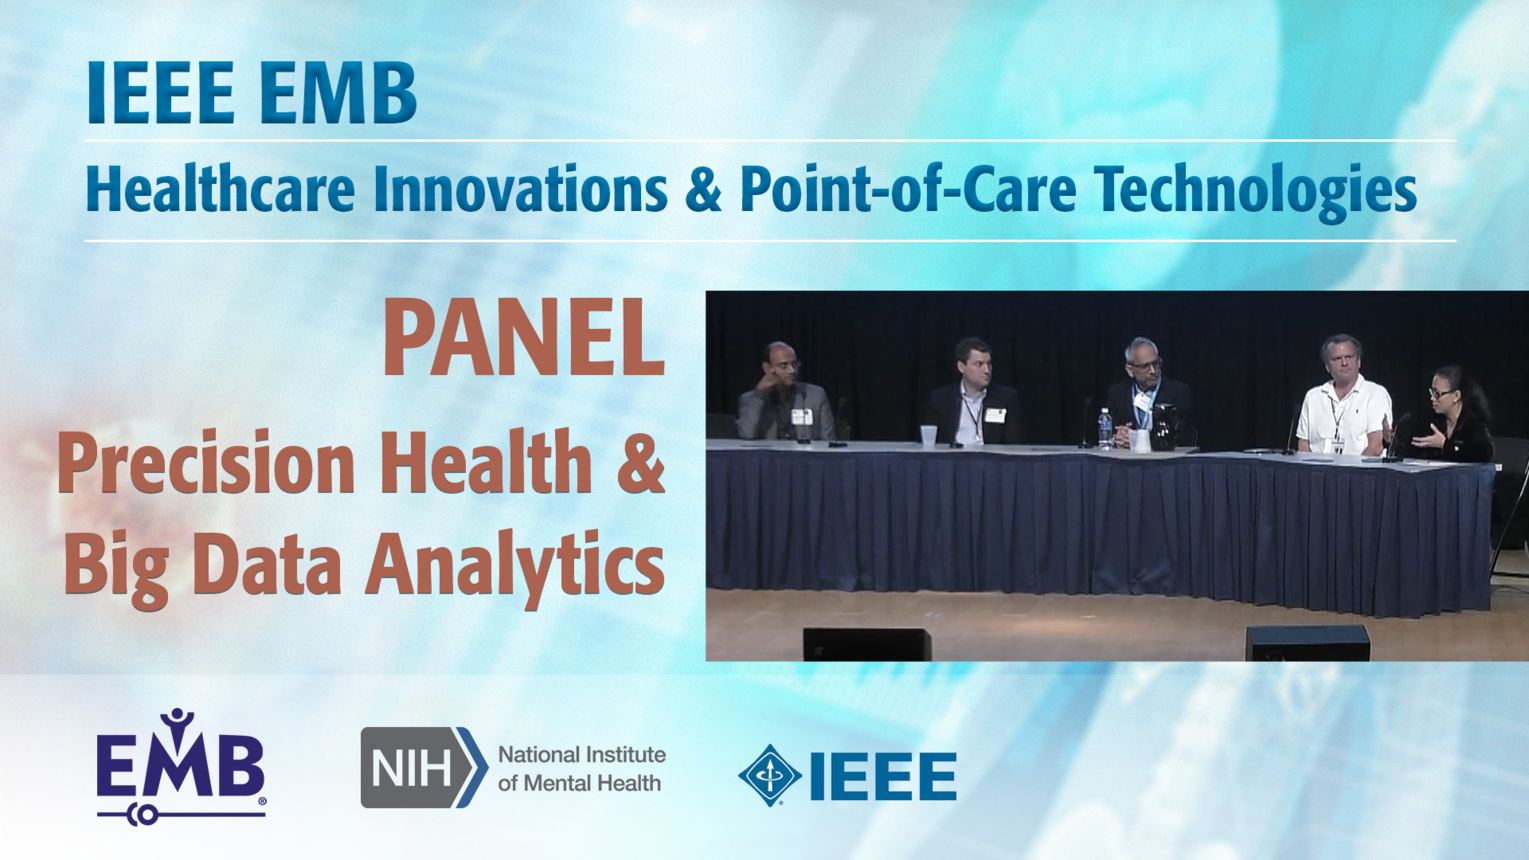 Panel: Precision Health & Big Data Analytics - IEEE EMBS at NIH, 2019